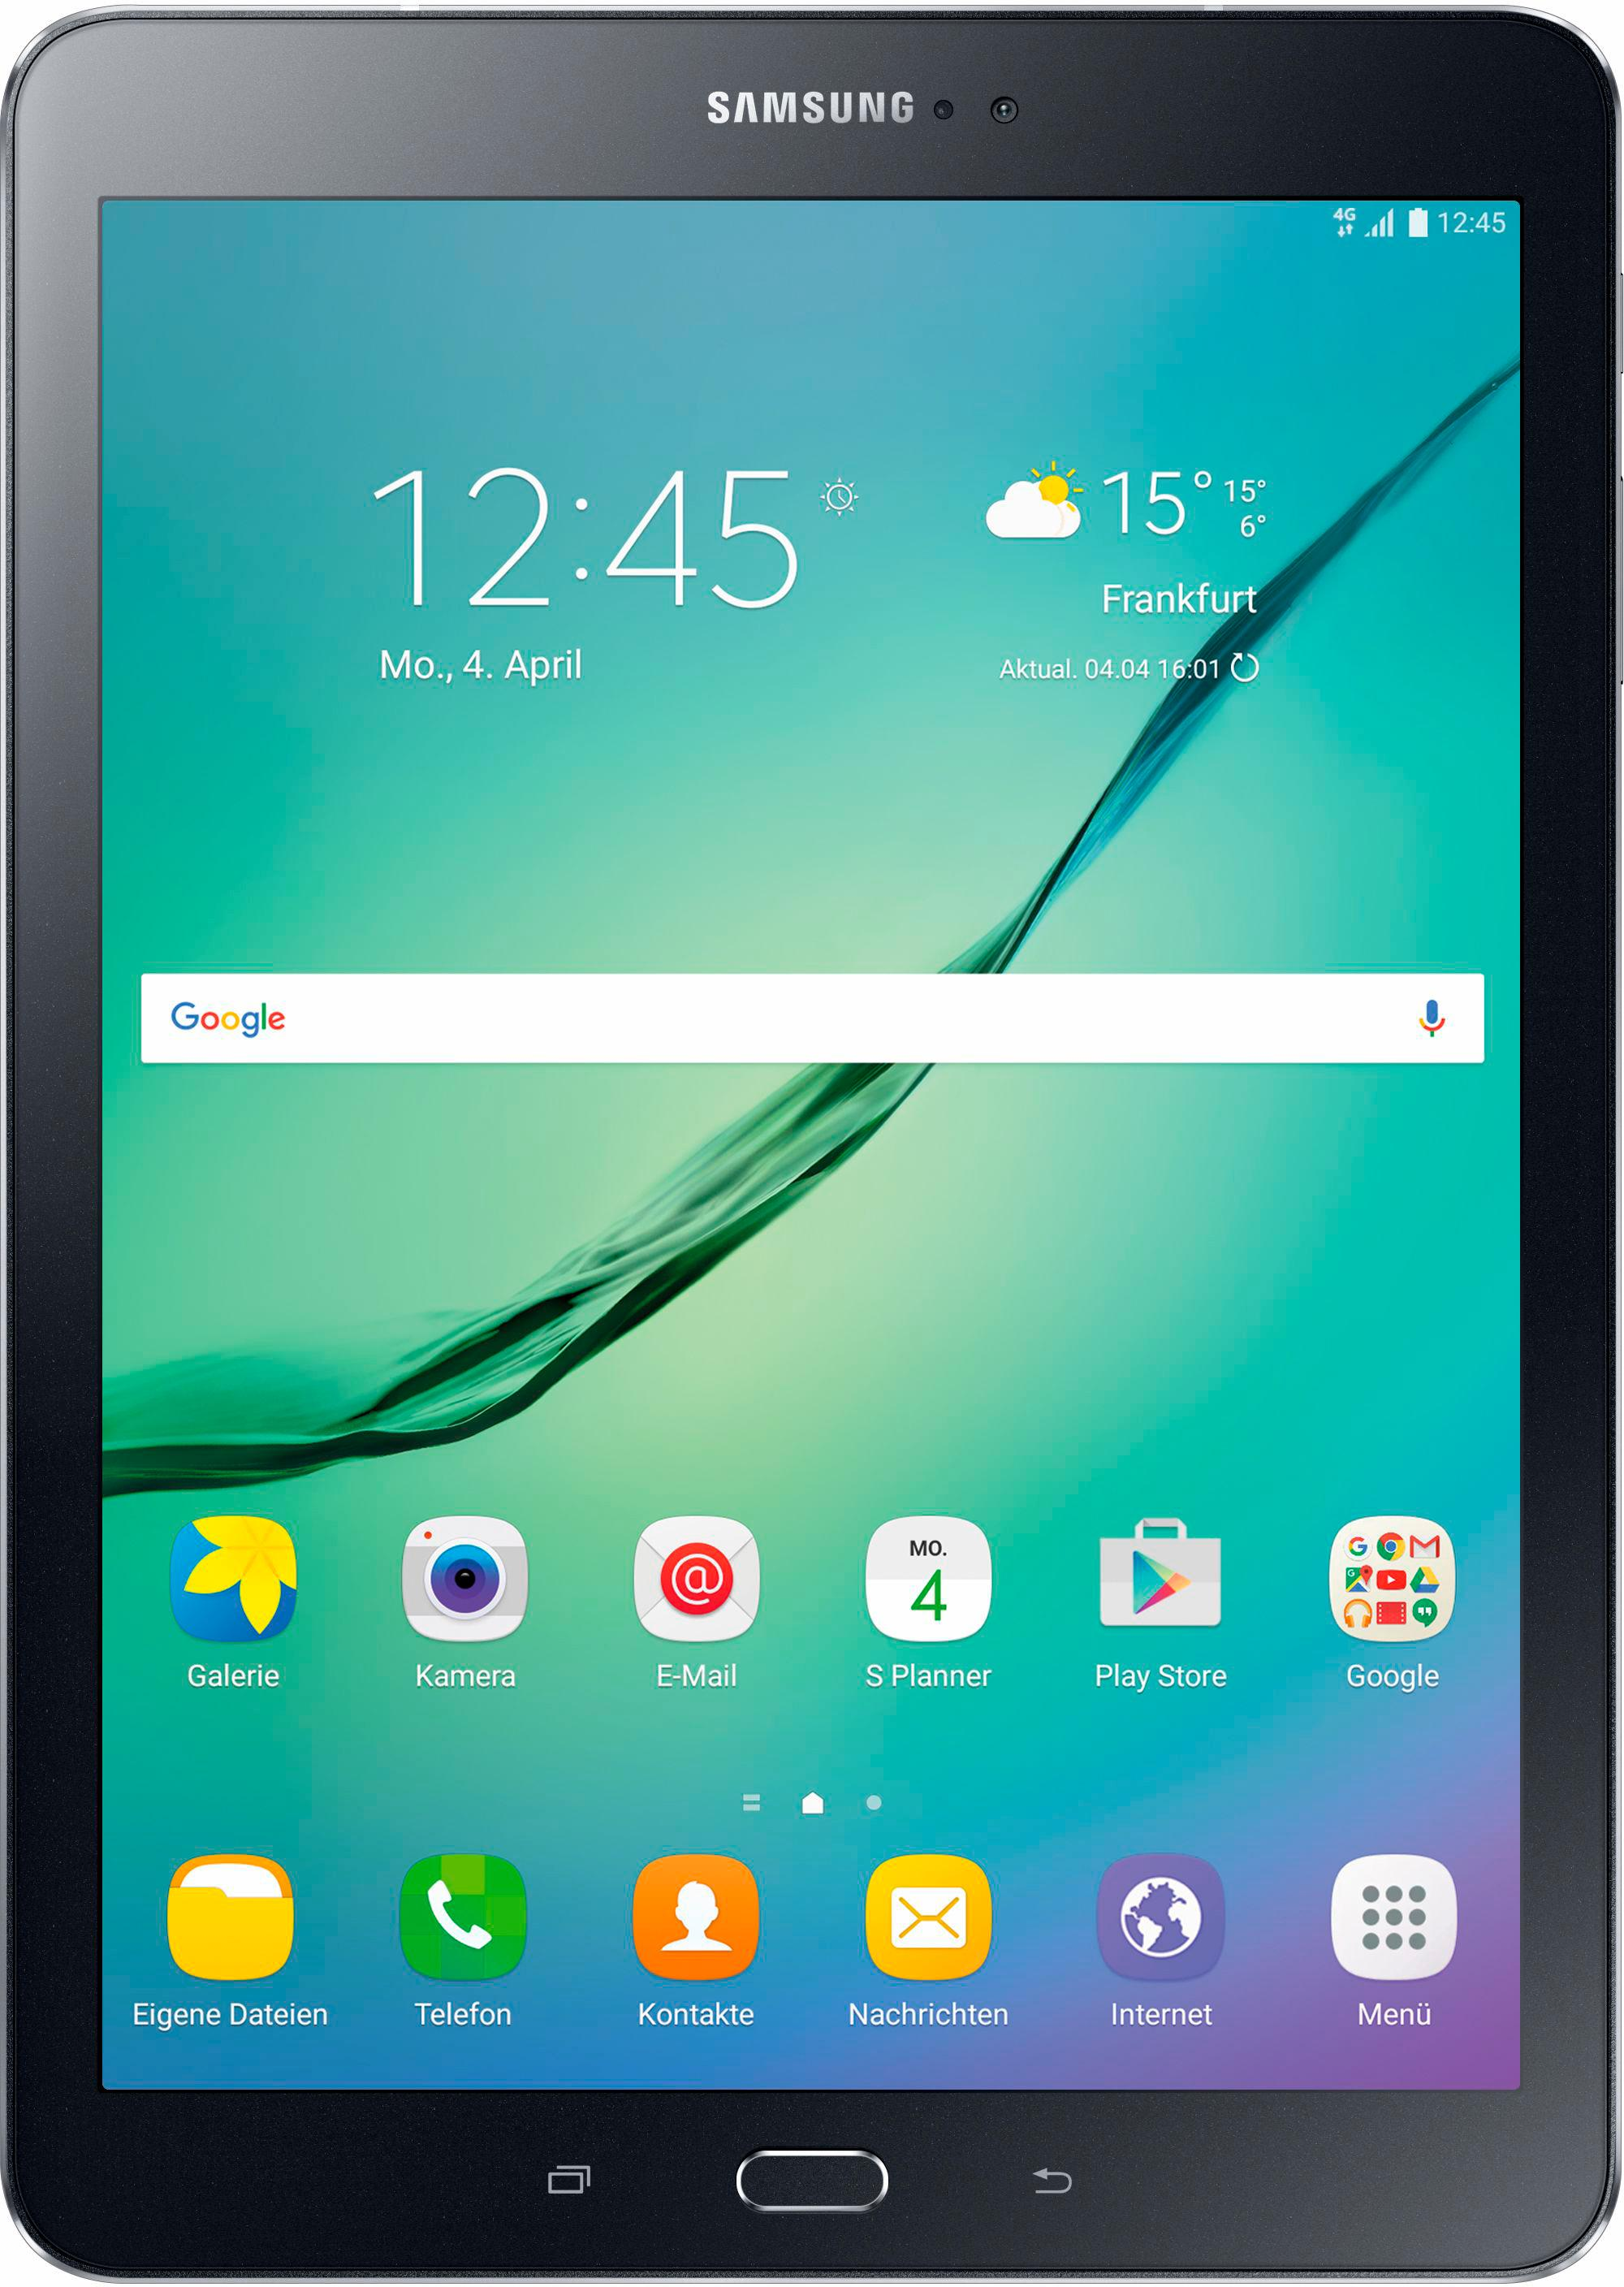 samsung galaxy tab s2 9 7 lte tablet 9 7 39 39 32 gb. Black Bedroom Furniture Sets. Home Design Ideas